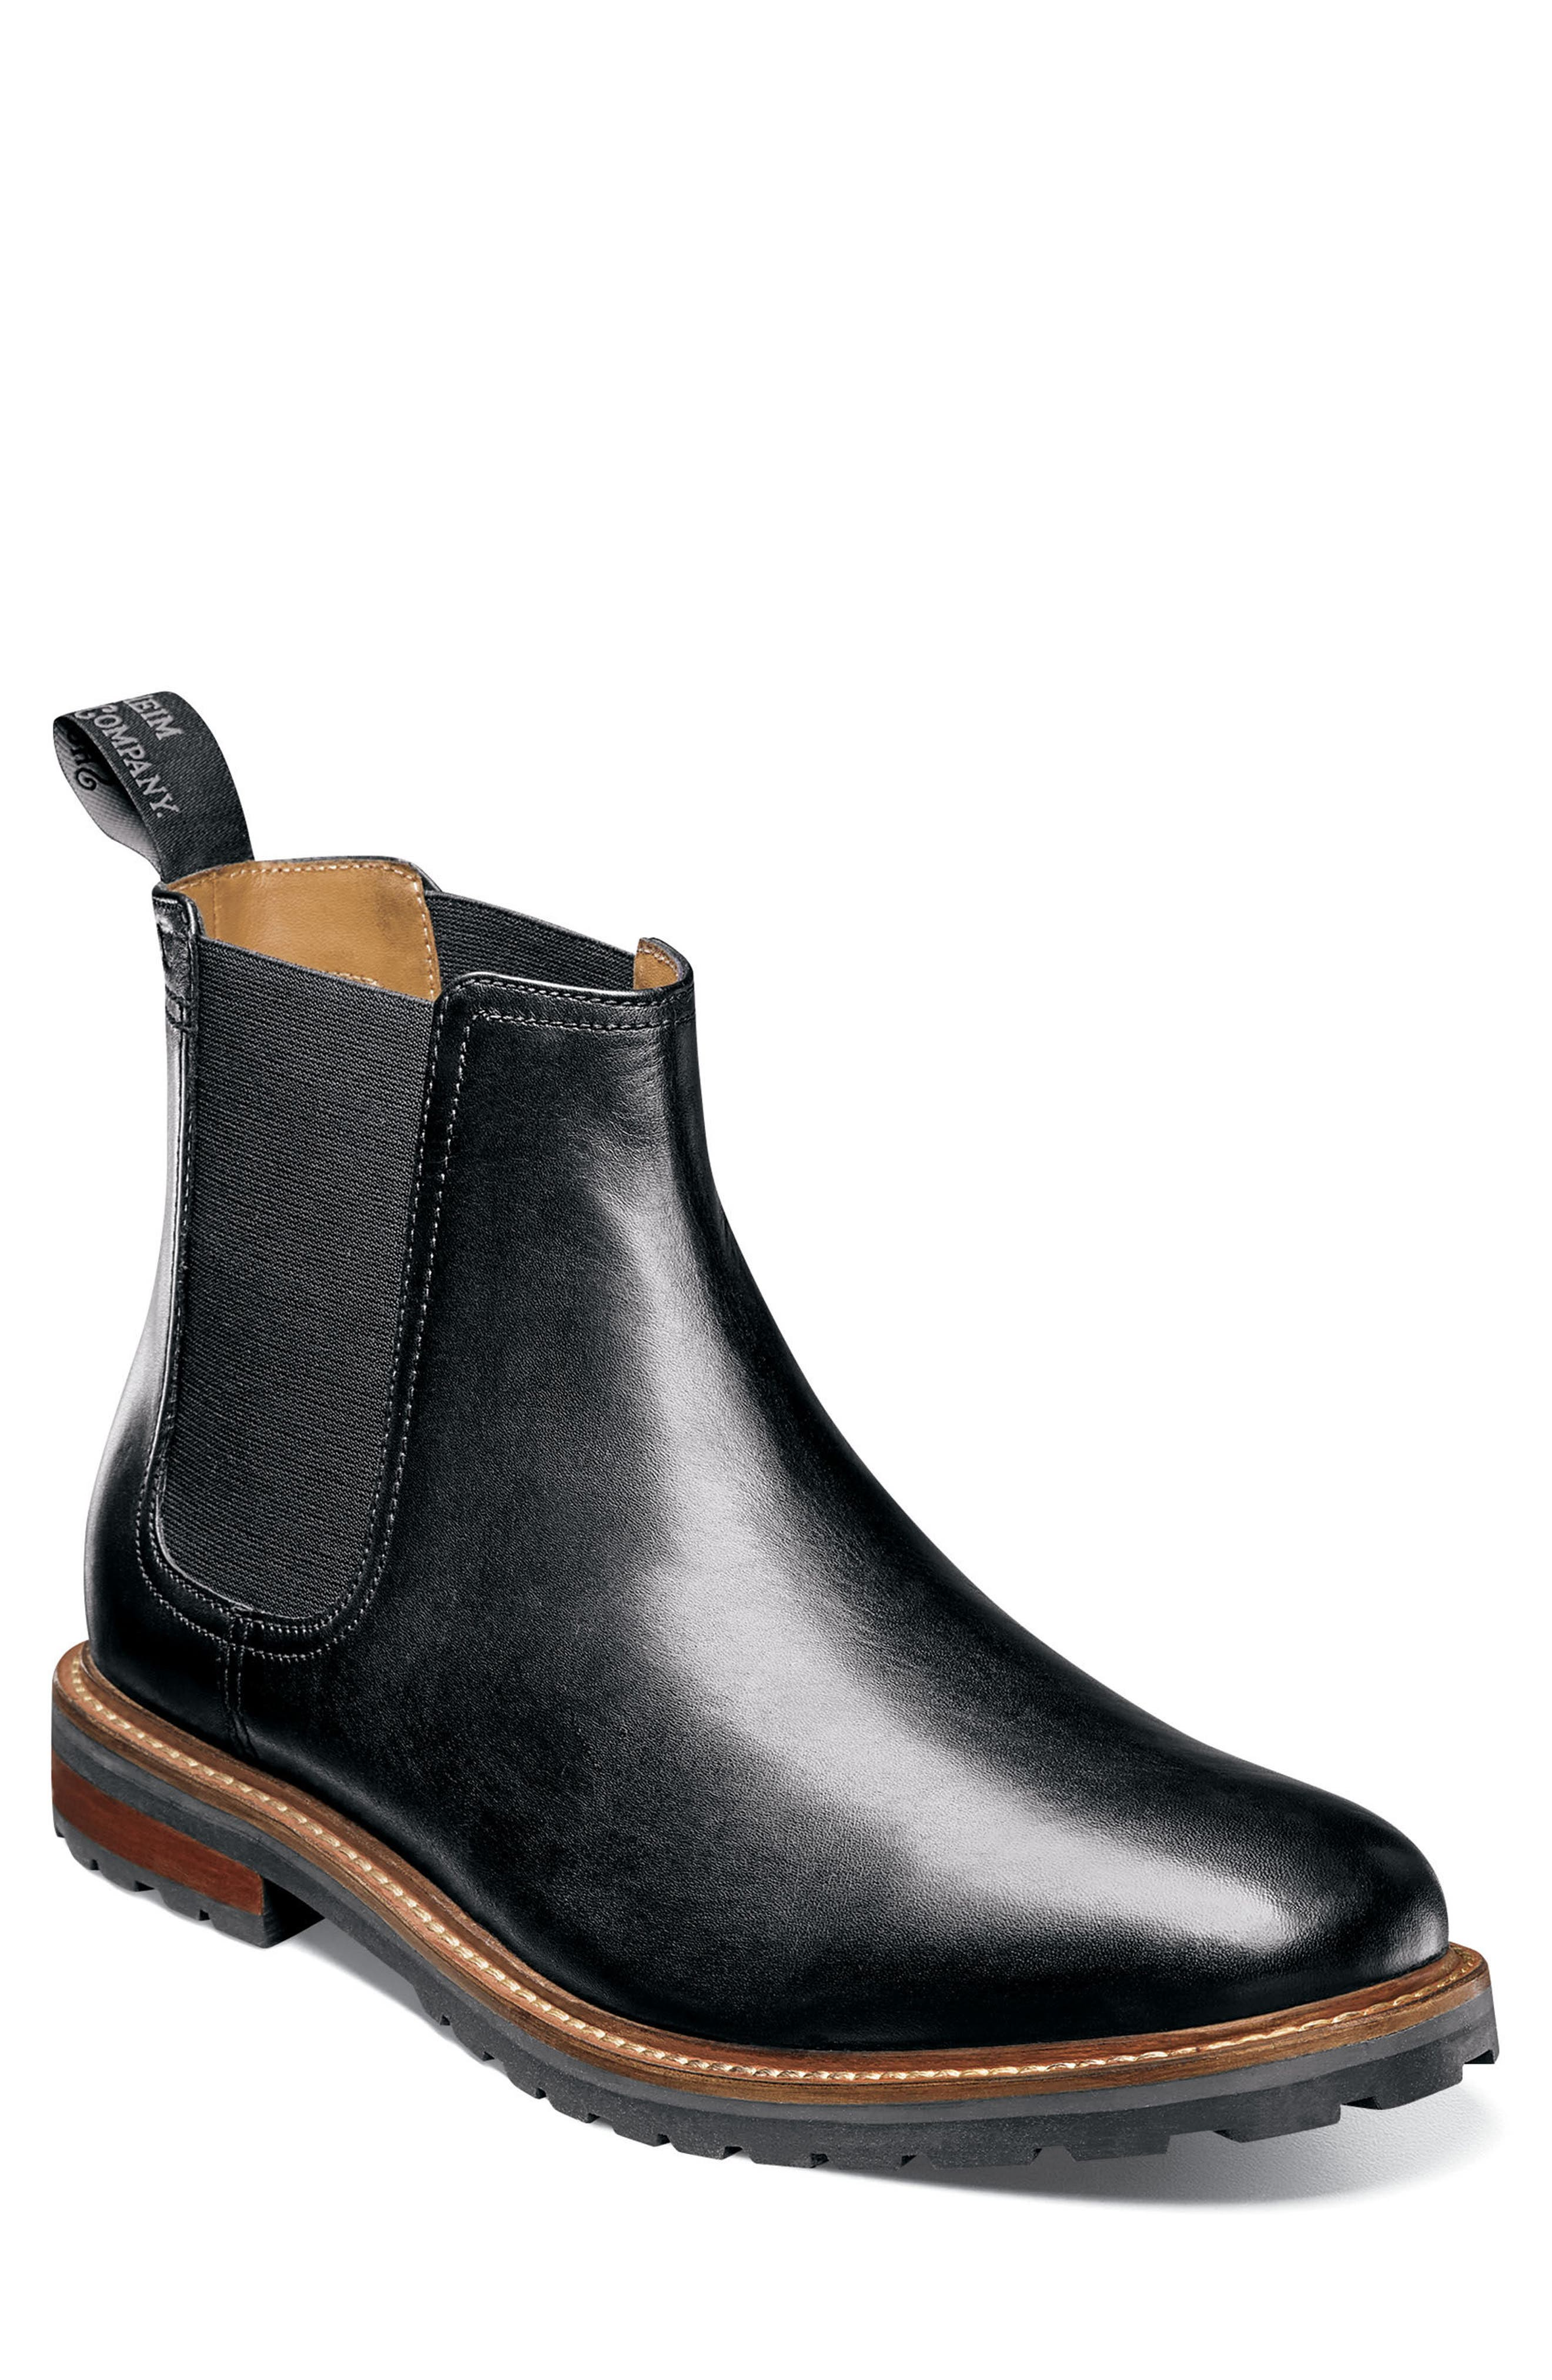 Estabrook Mid Chelsea Boot,                         Main,                         color, BLACK LEATHER